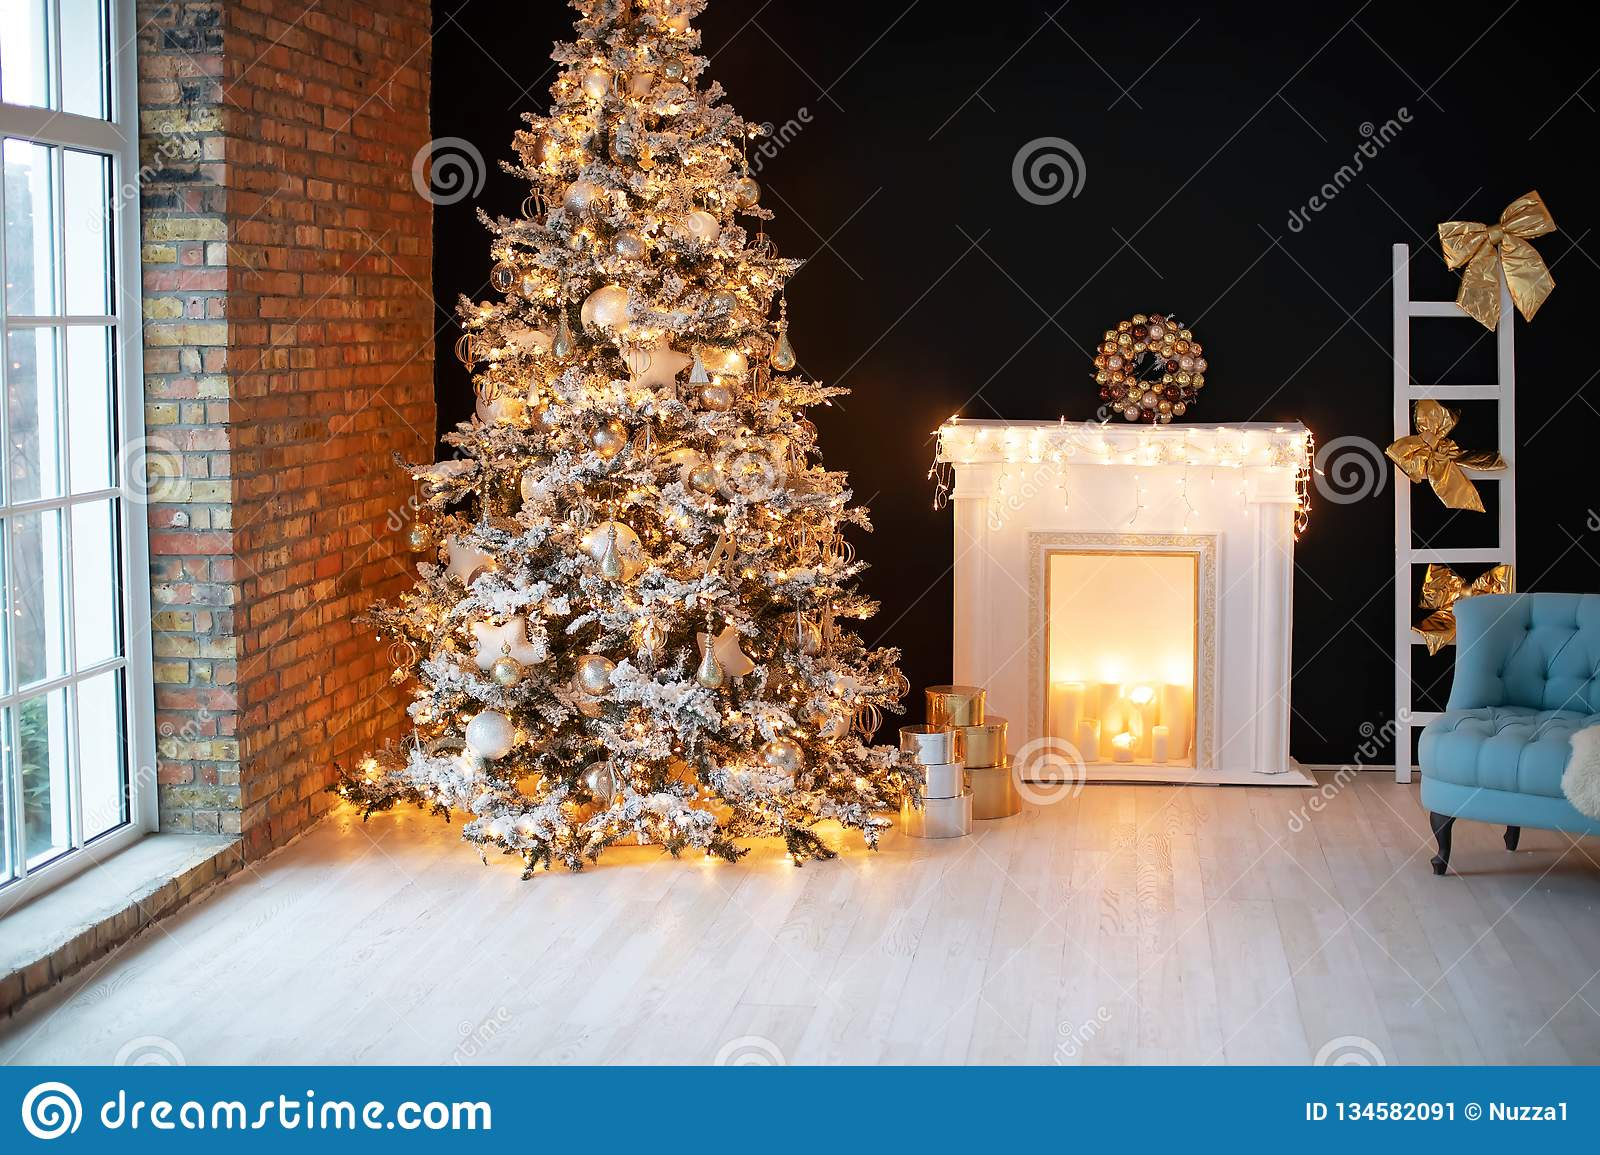 Beautiful Christmas Decor In A Cozy Home Stock Image Image Of Comfort Design 134582091